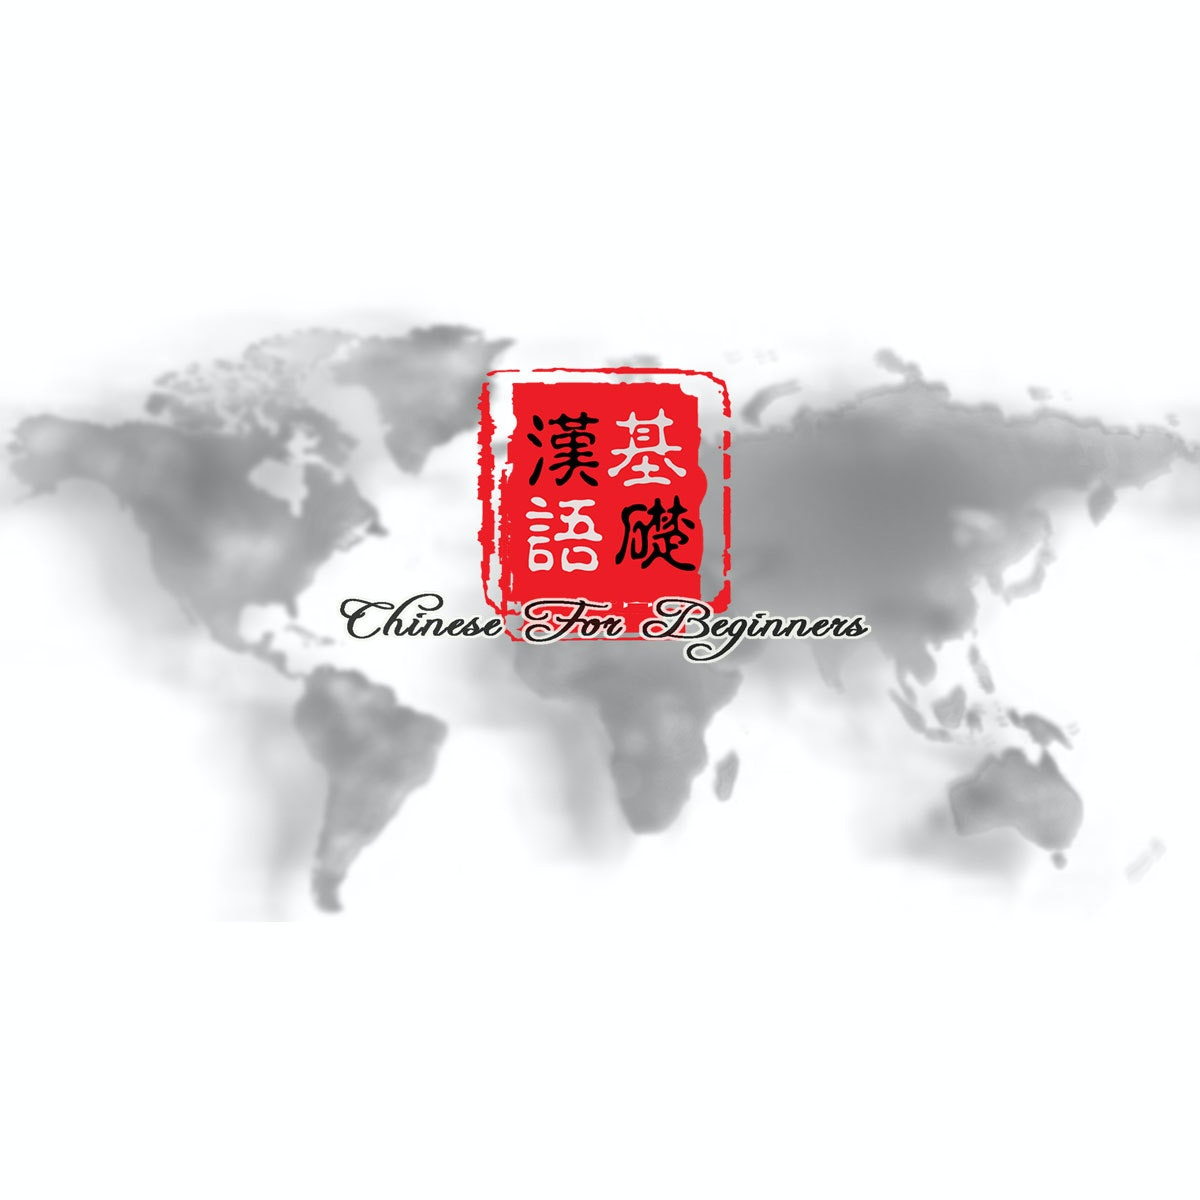 Chinese for Beginners Coupon